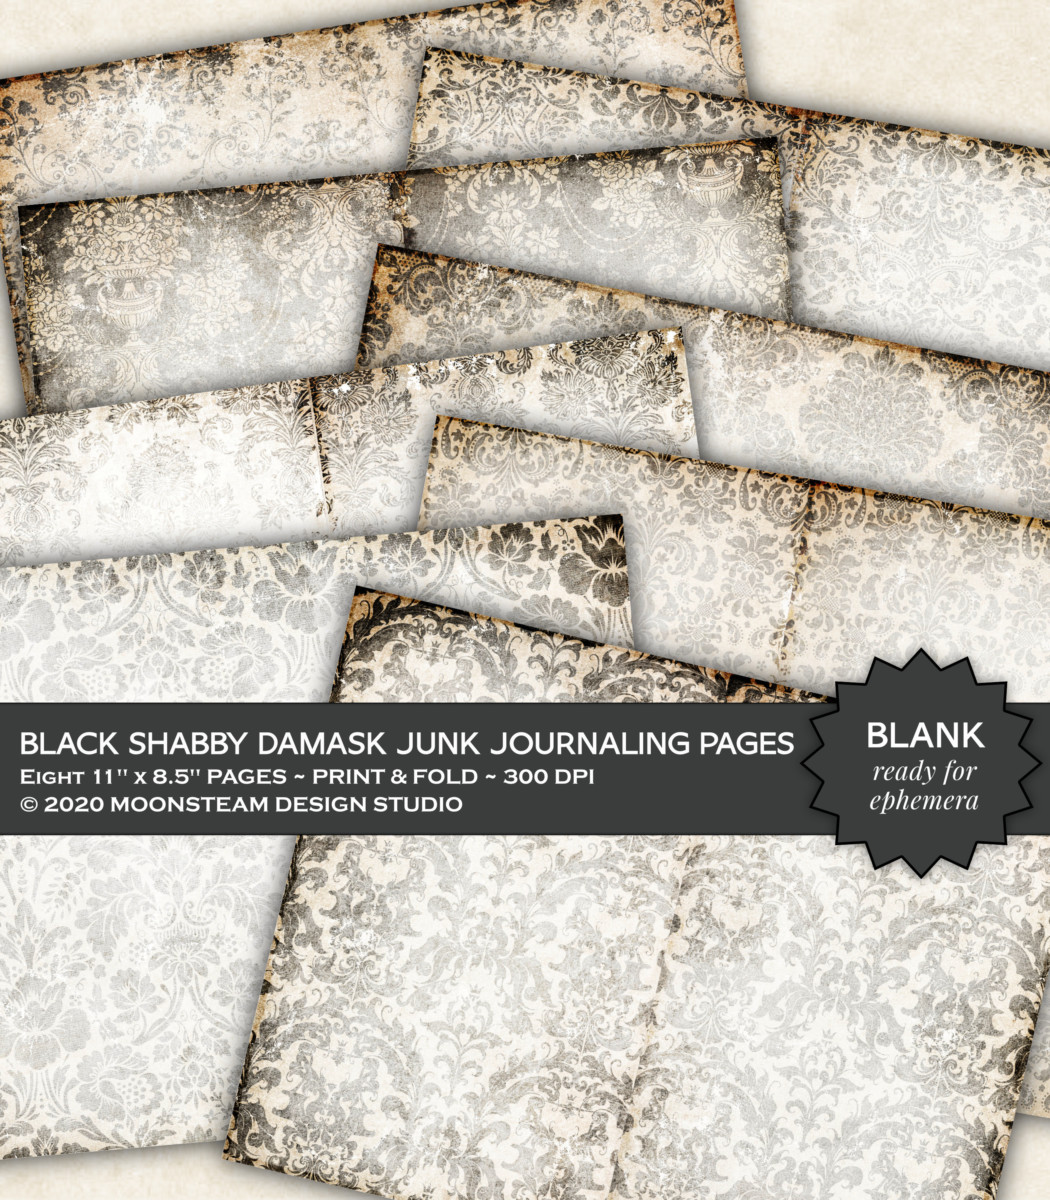 Black Shabby Damask Blank Journal Pages by Moonsteam Design Studio